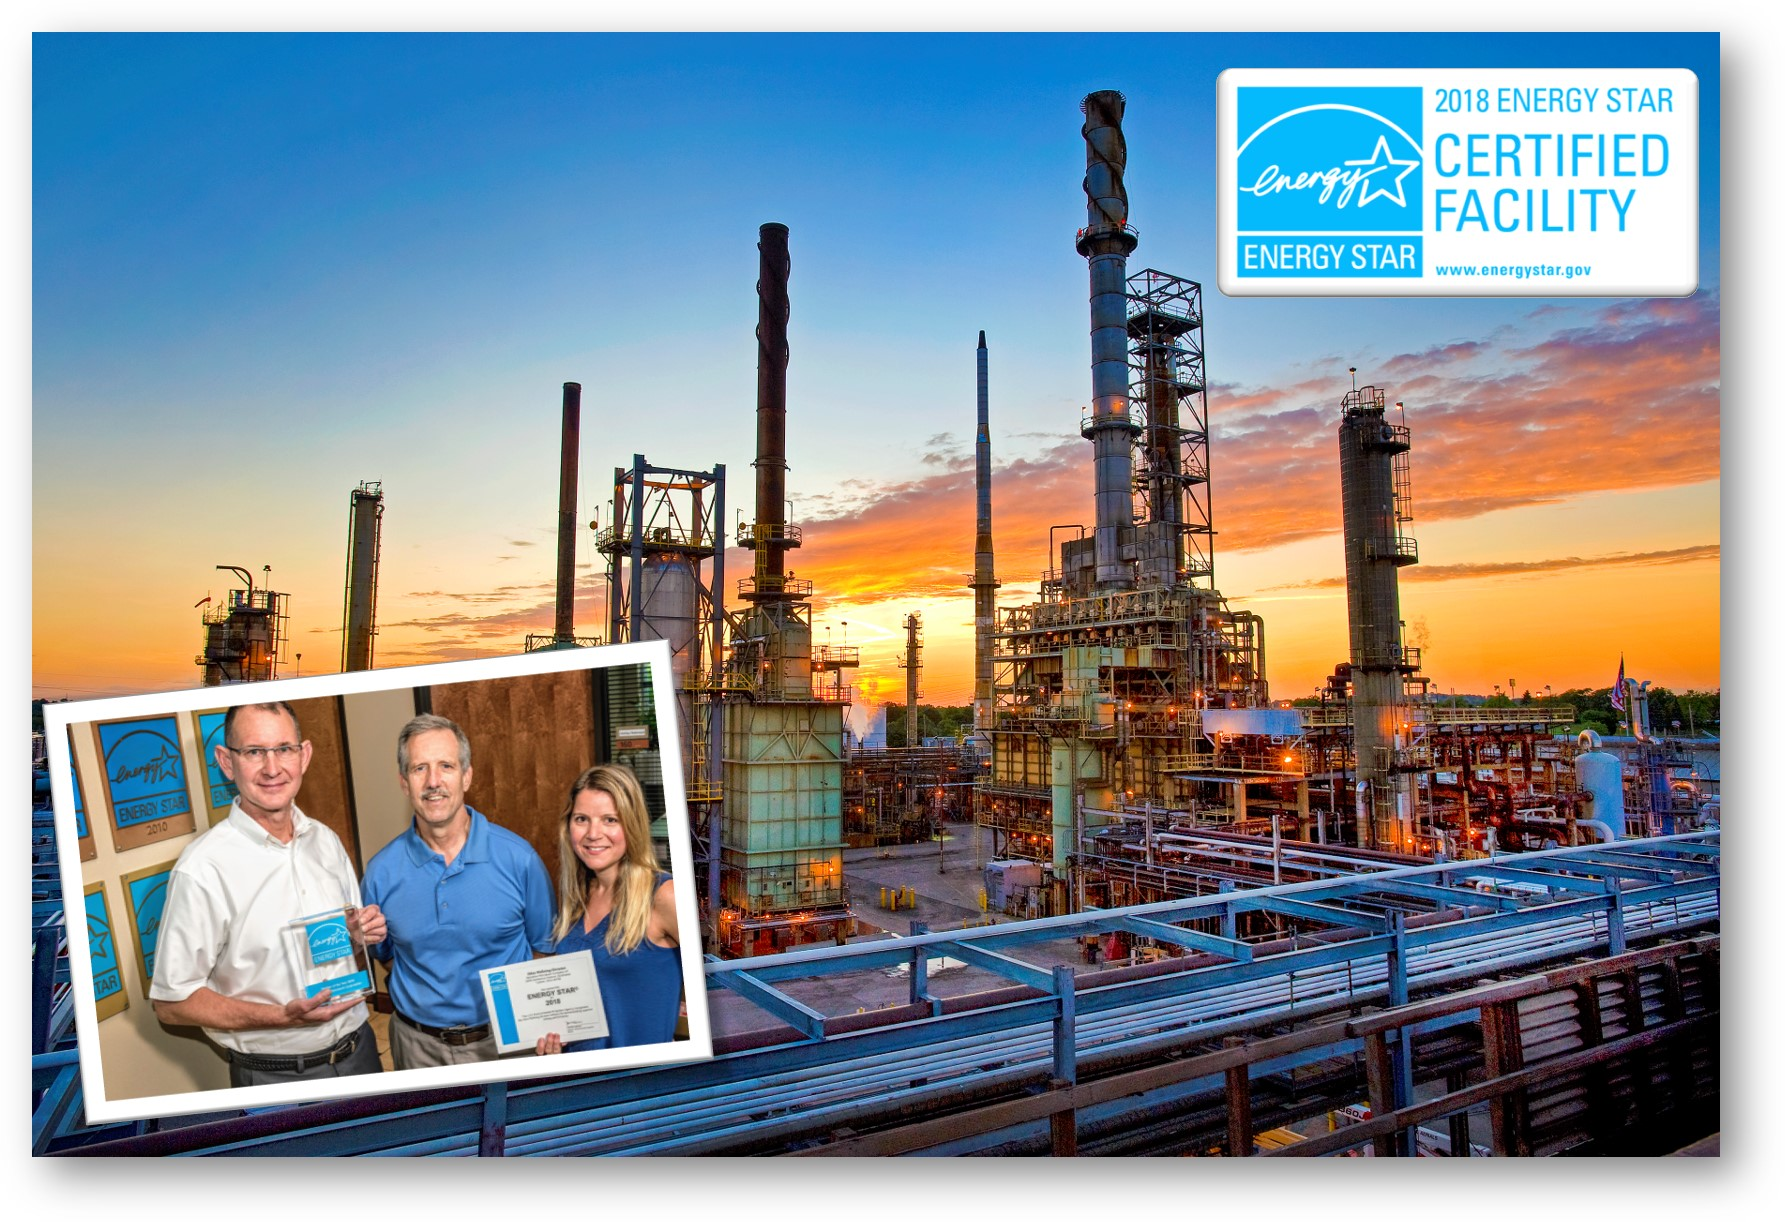 Photo of Canton refinery and refinery staff with ENERGY STAR certificate for 2018